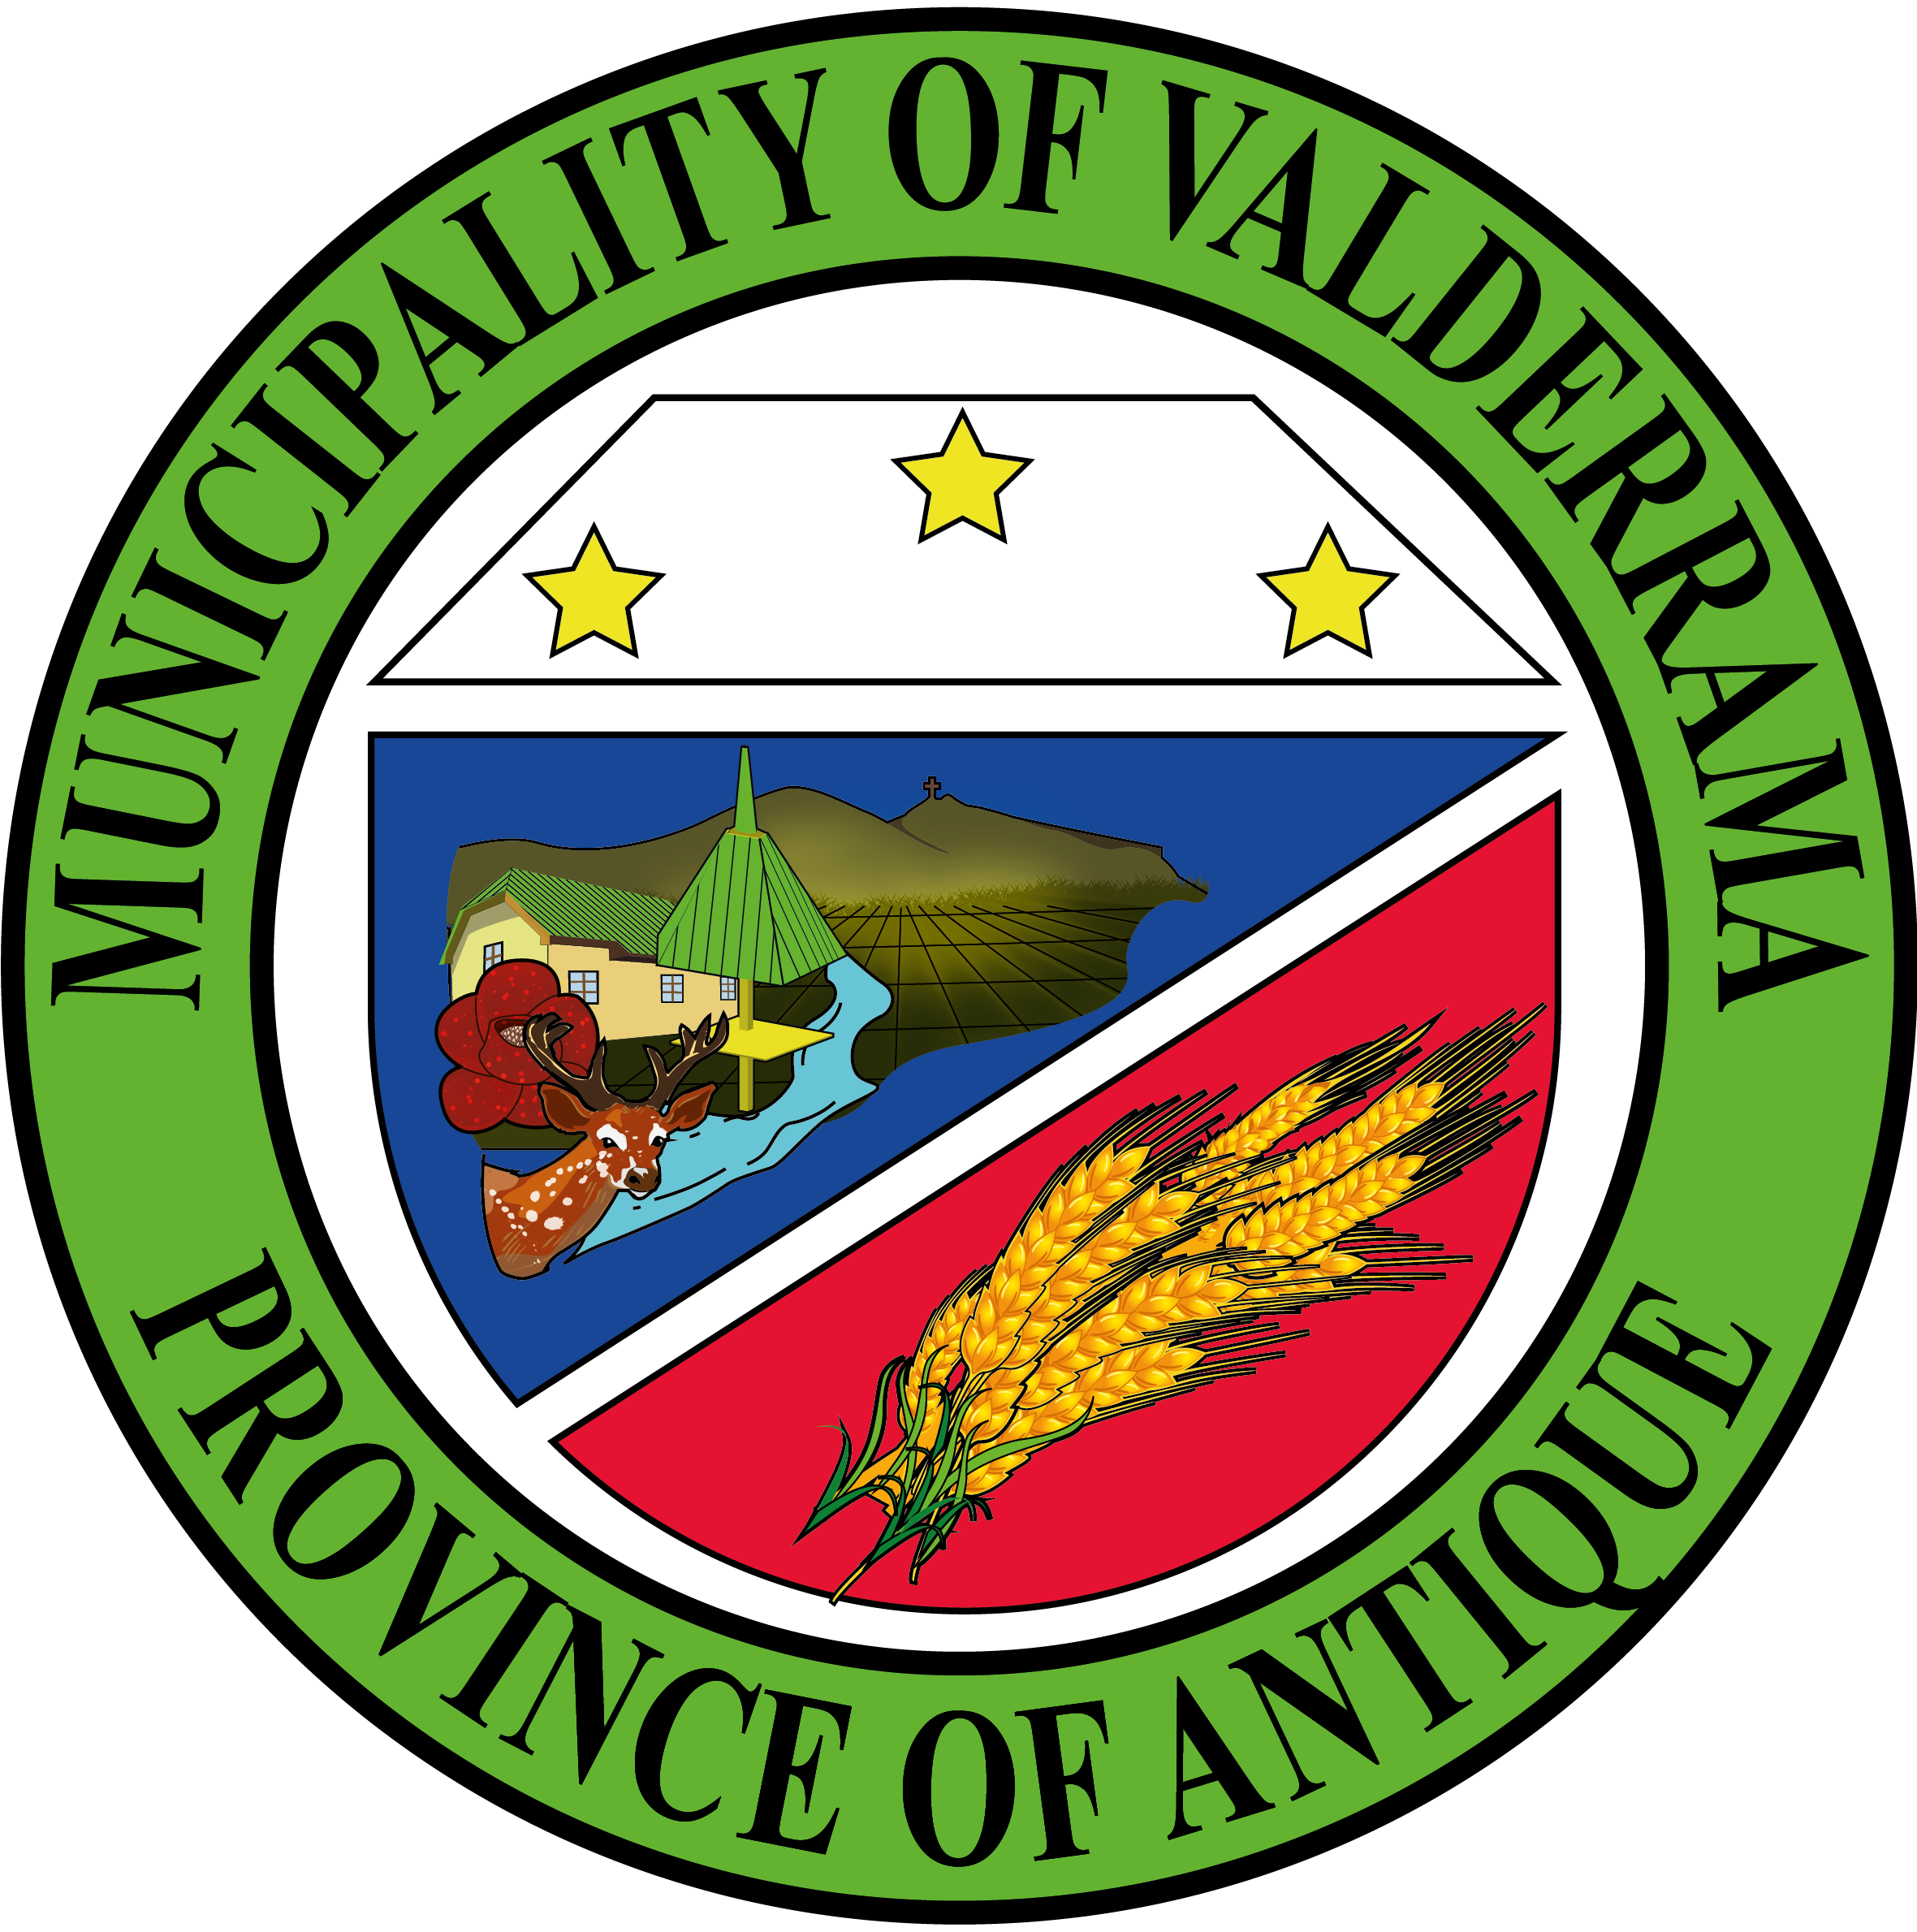 Municipality of Valderrama Official Logo